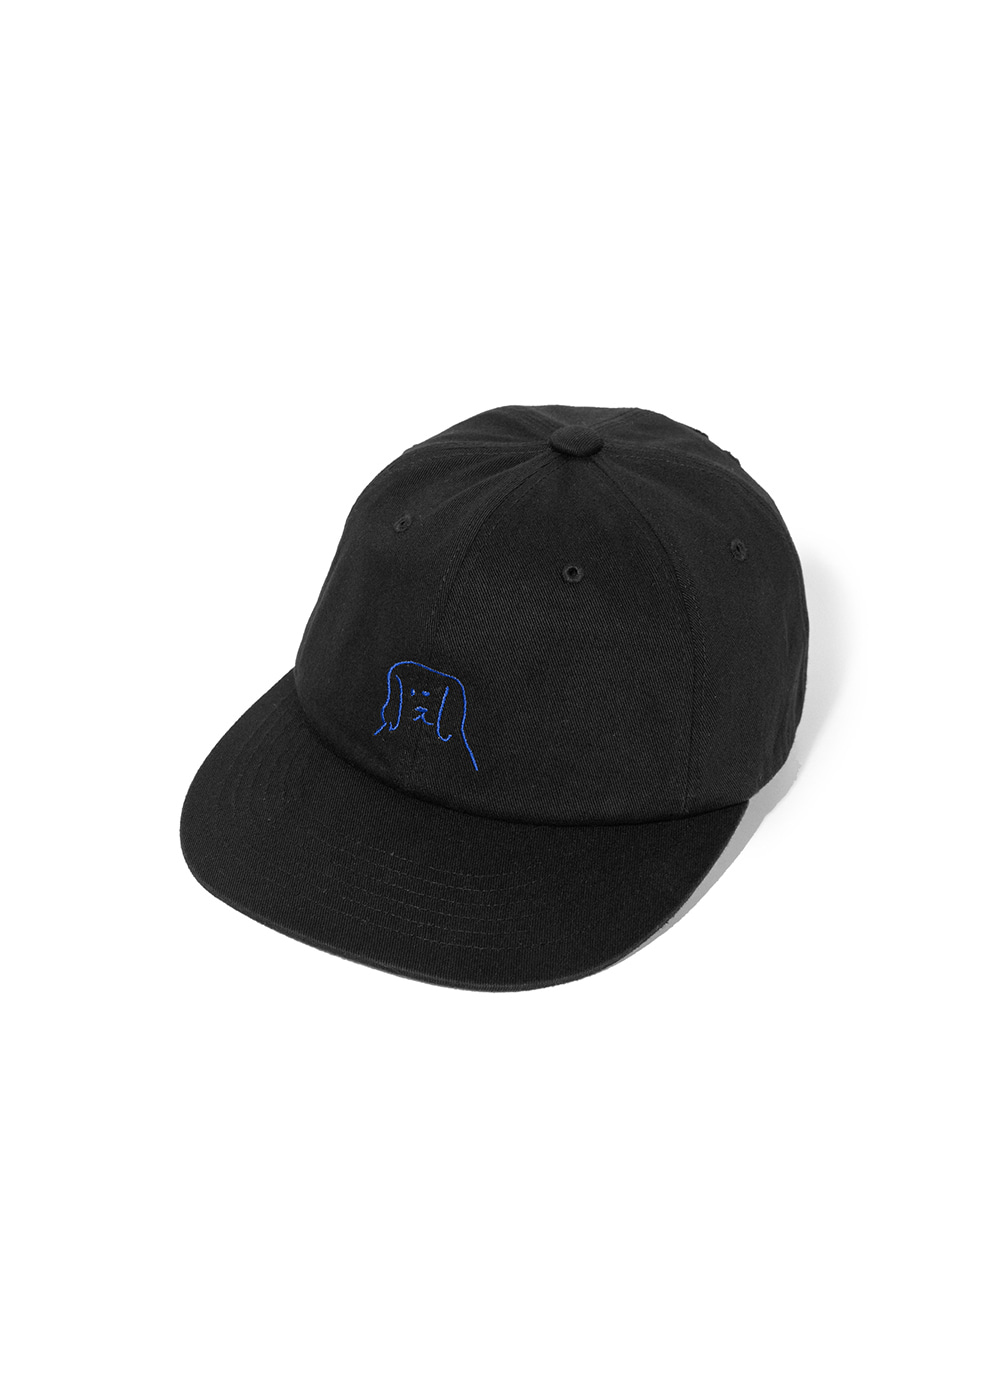 LIFUL x PUPPY RADIO PUPPY CAP black